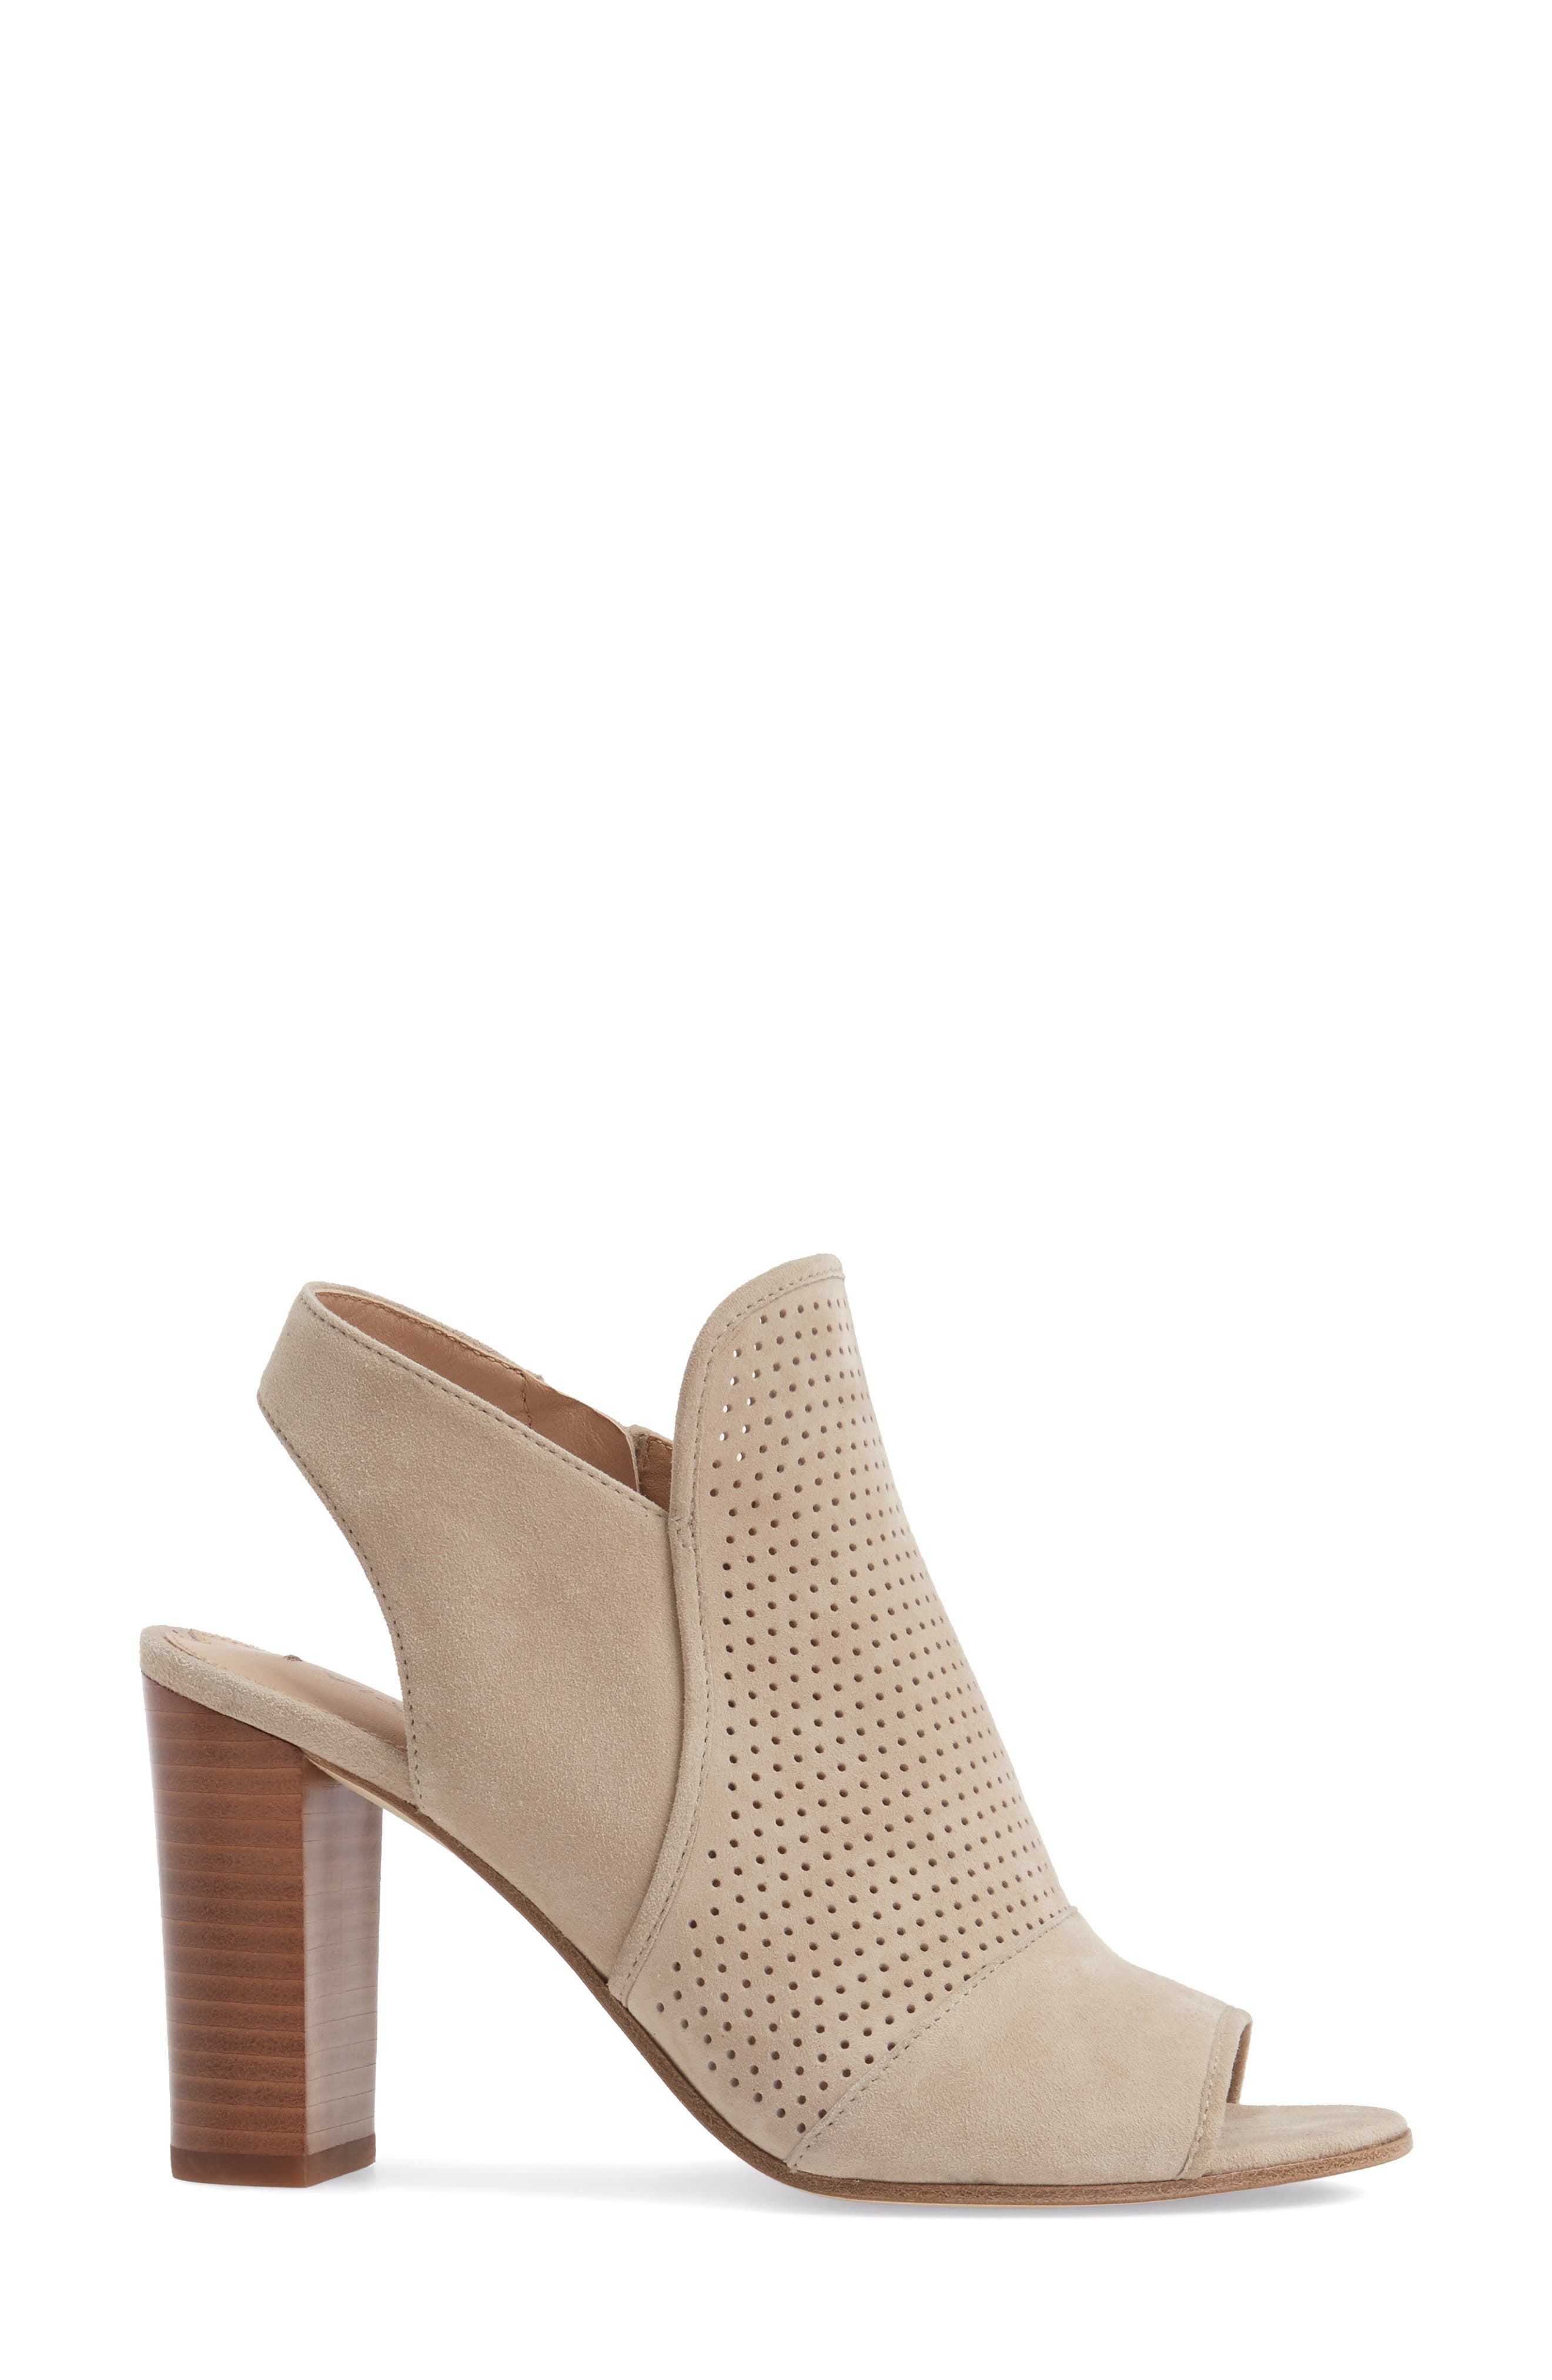 Alternate Image 3  - Via Spiga Gaze Block Heel Sandal (Women)